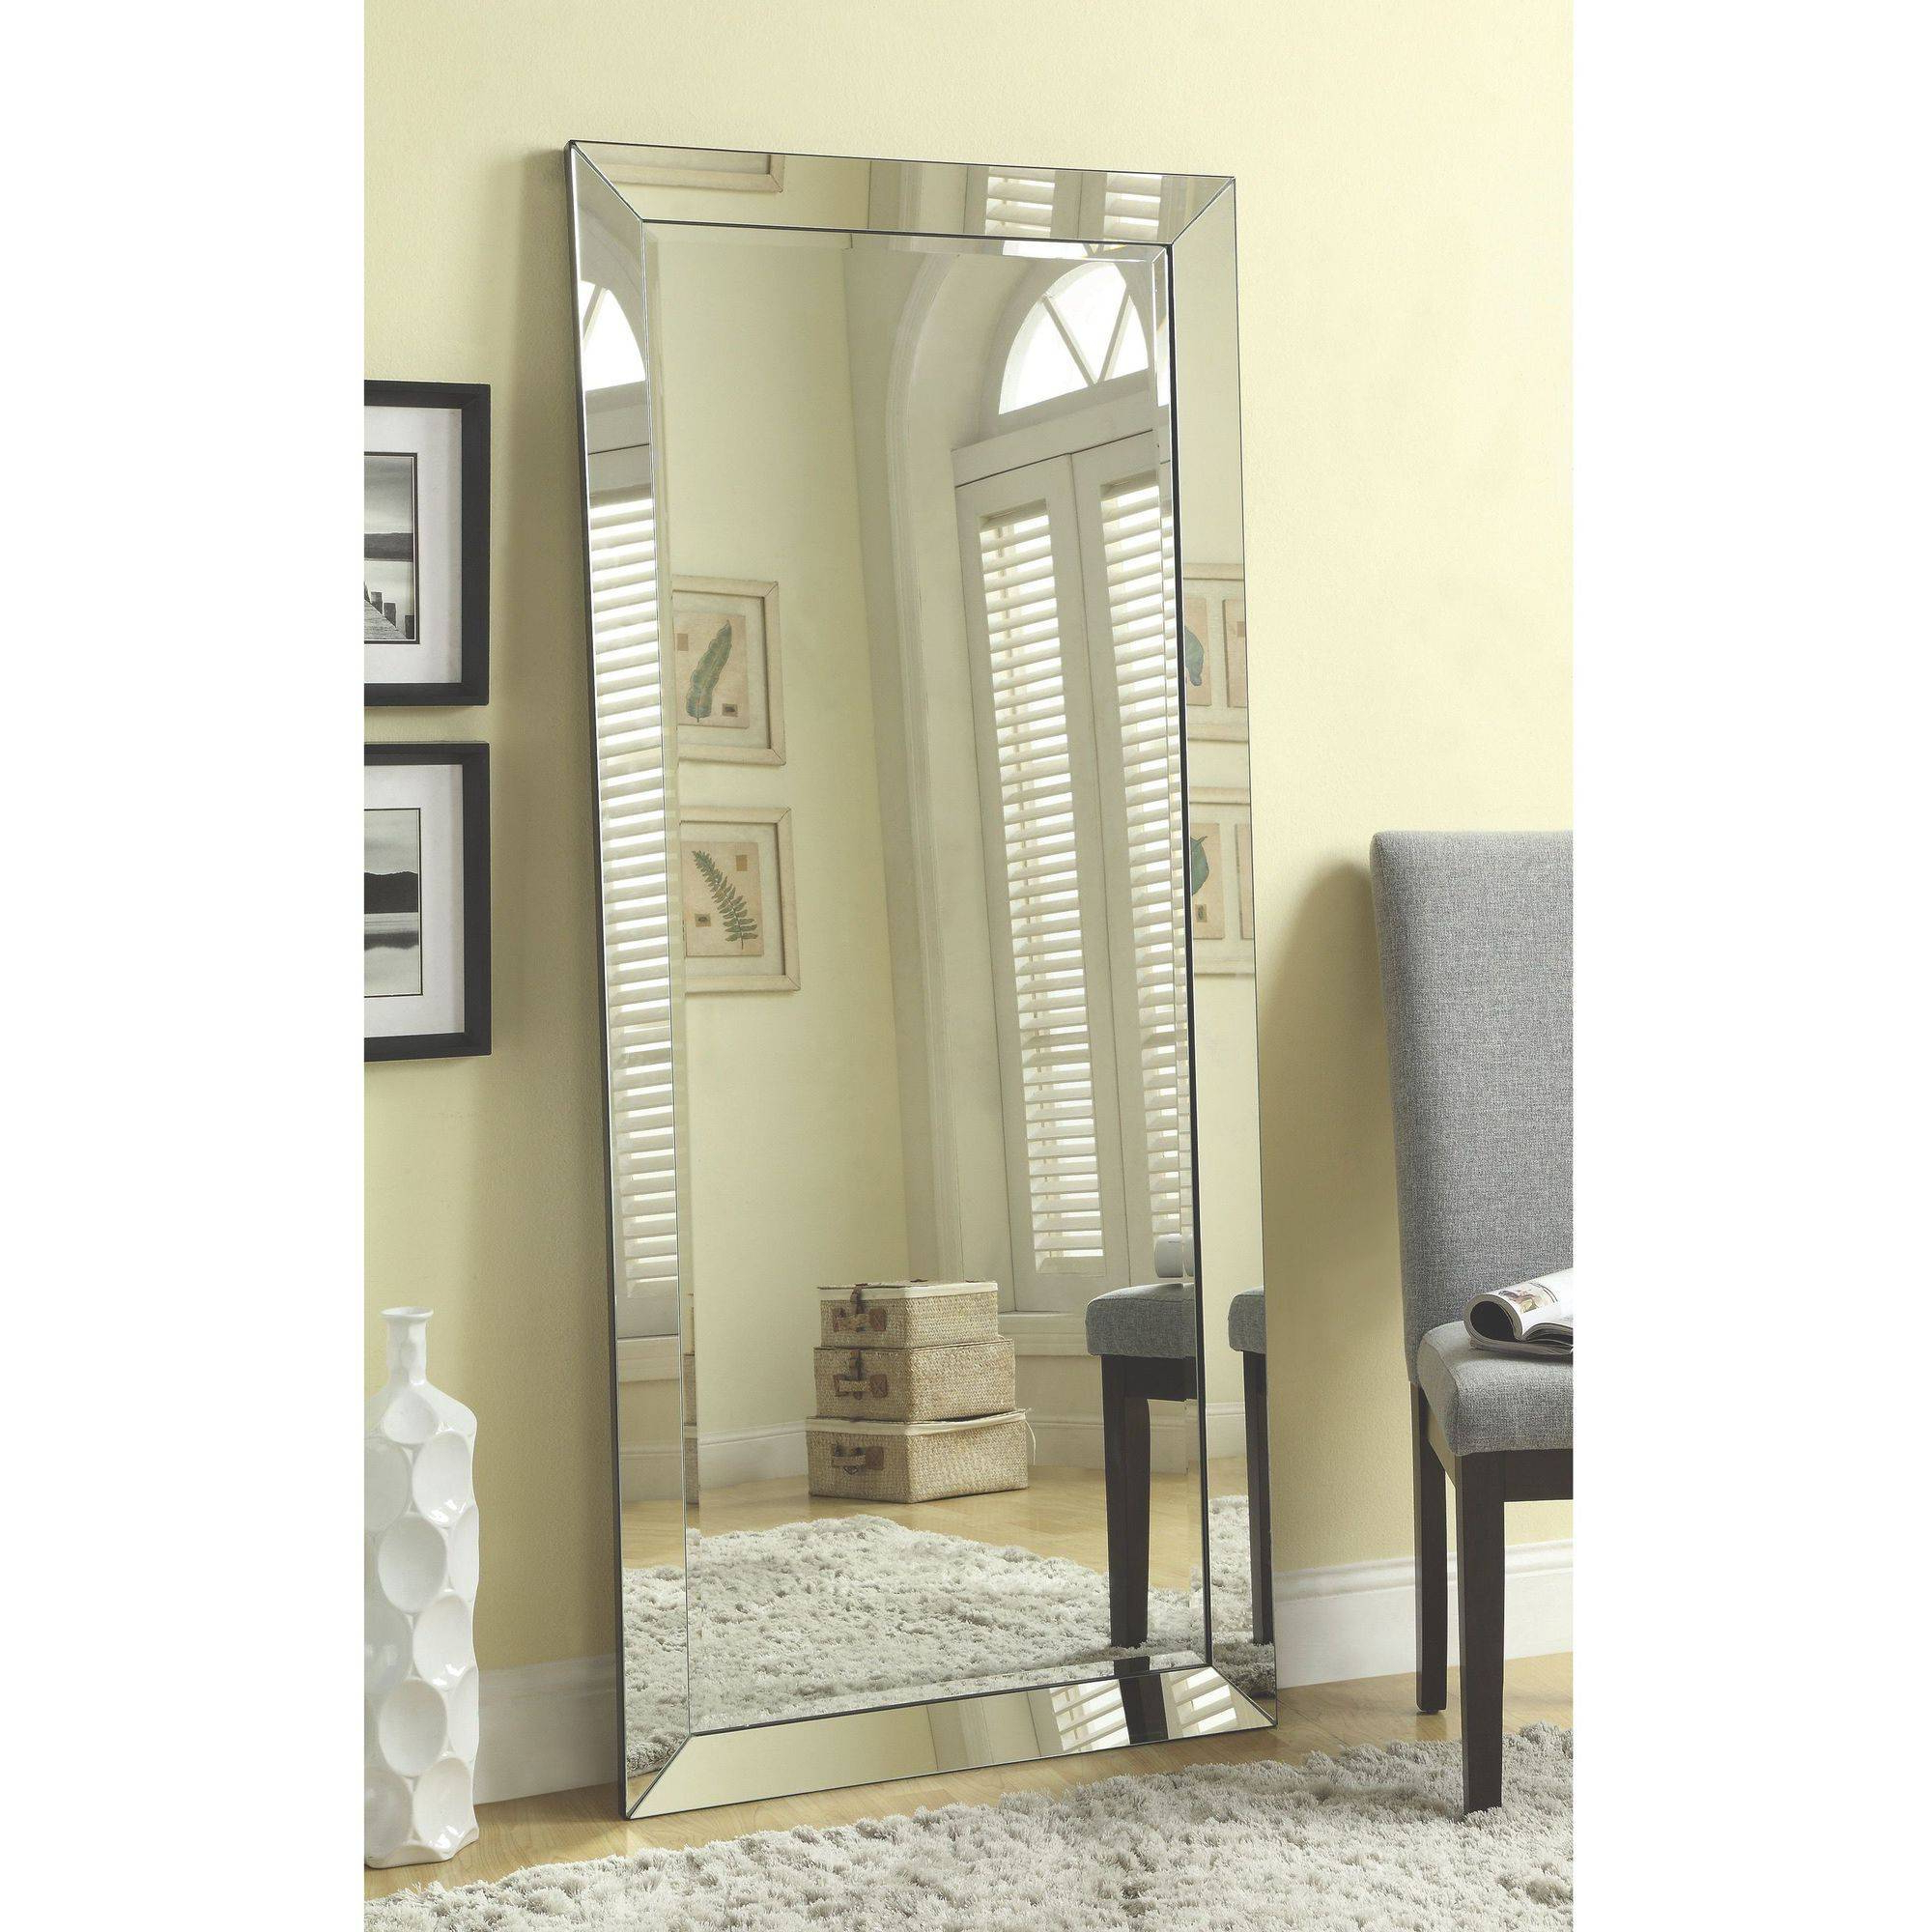 2020 34 Most Unbeatable Long Wall Mirrors Mirror No Frame Large Frameless With Regard To Full Length Frameless Wall Mirrors (View 6 of 20)